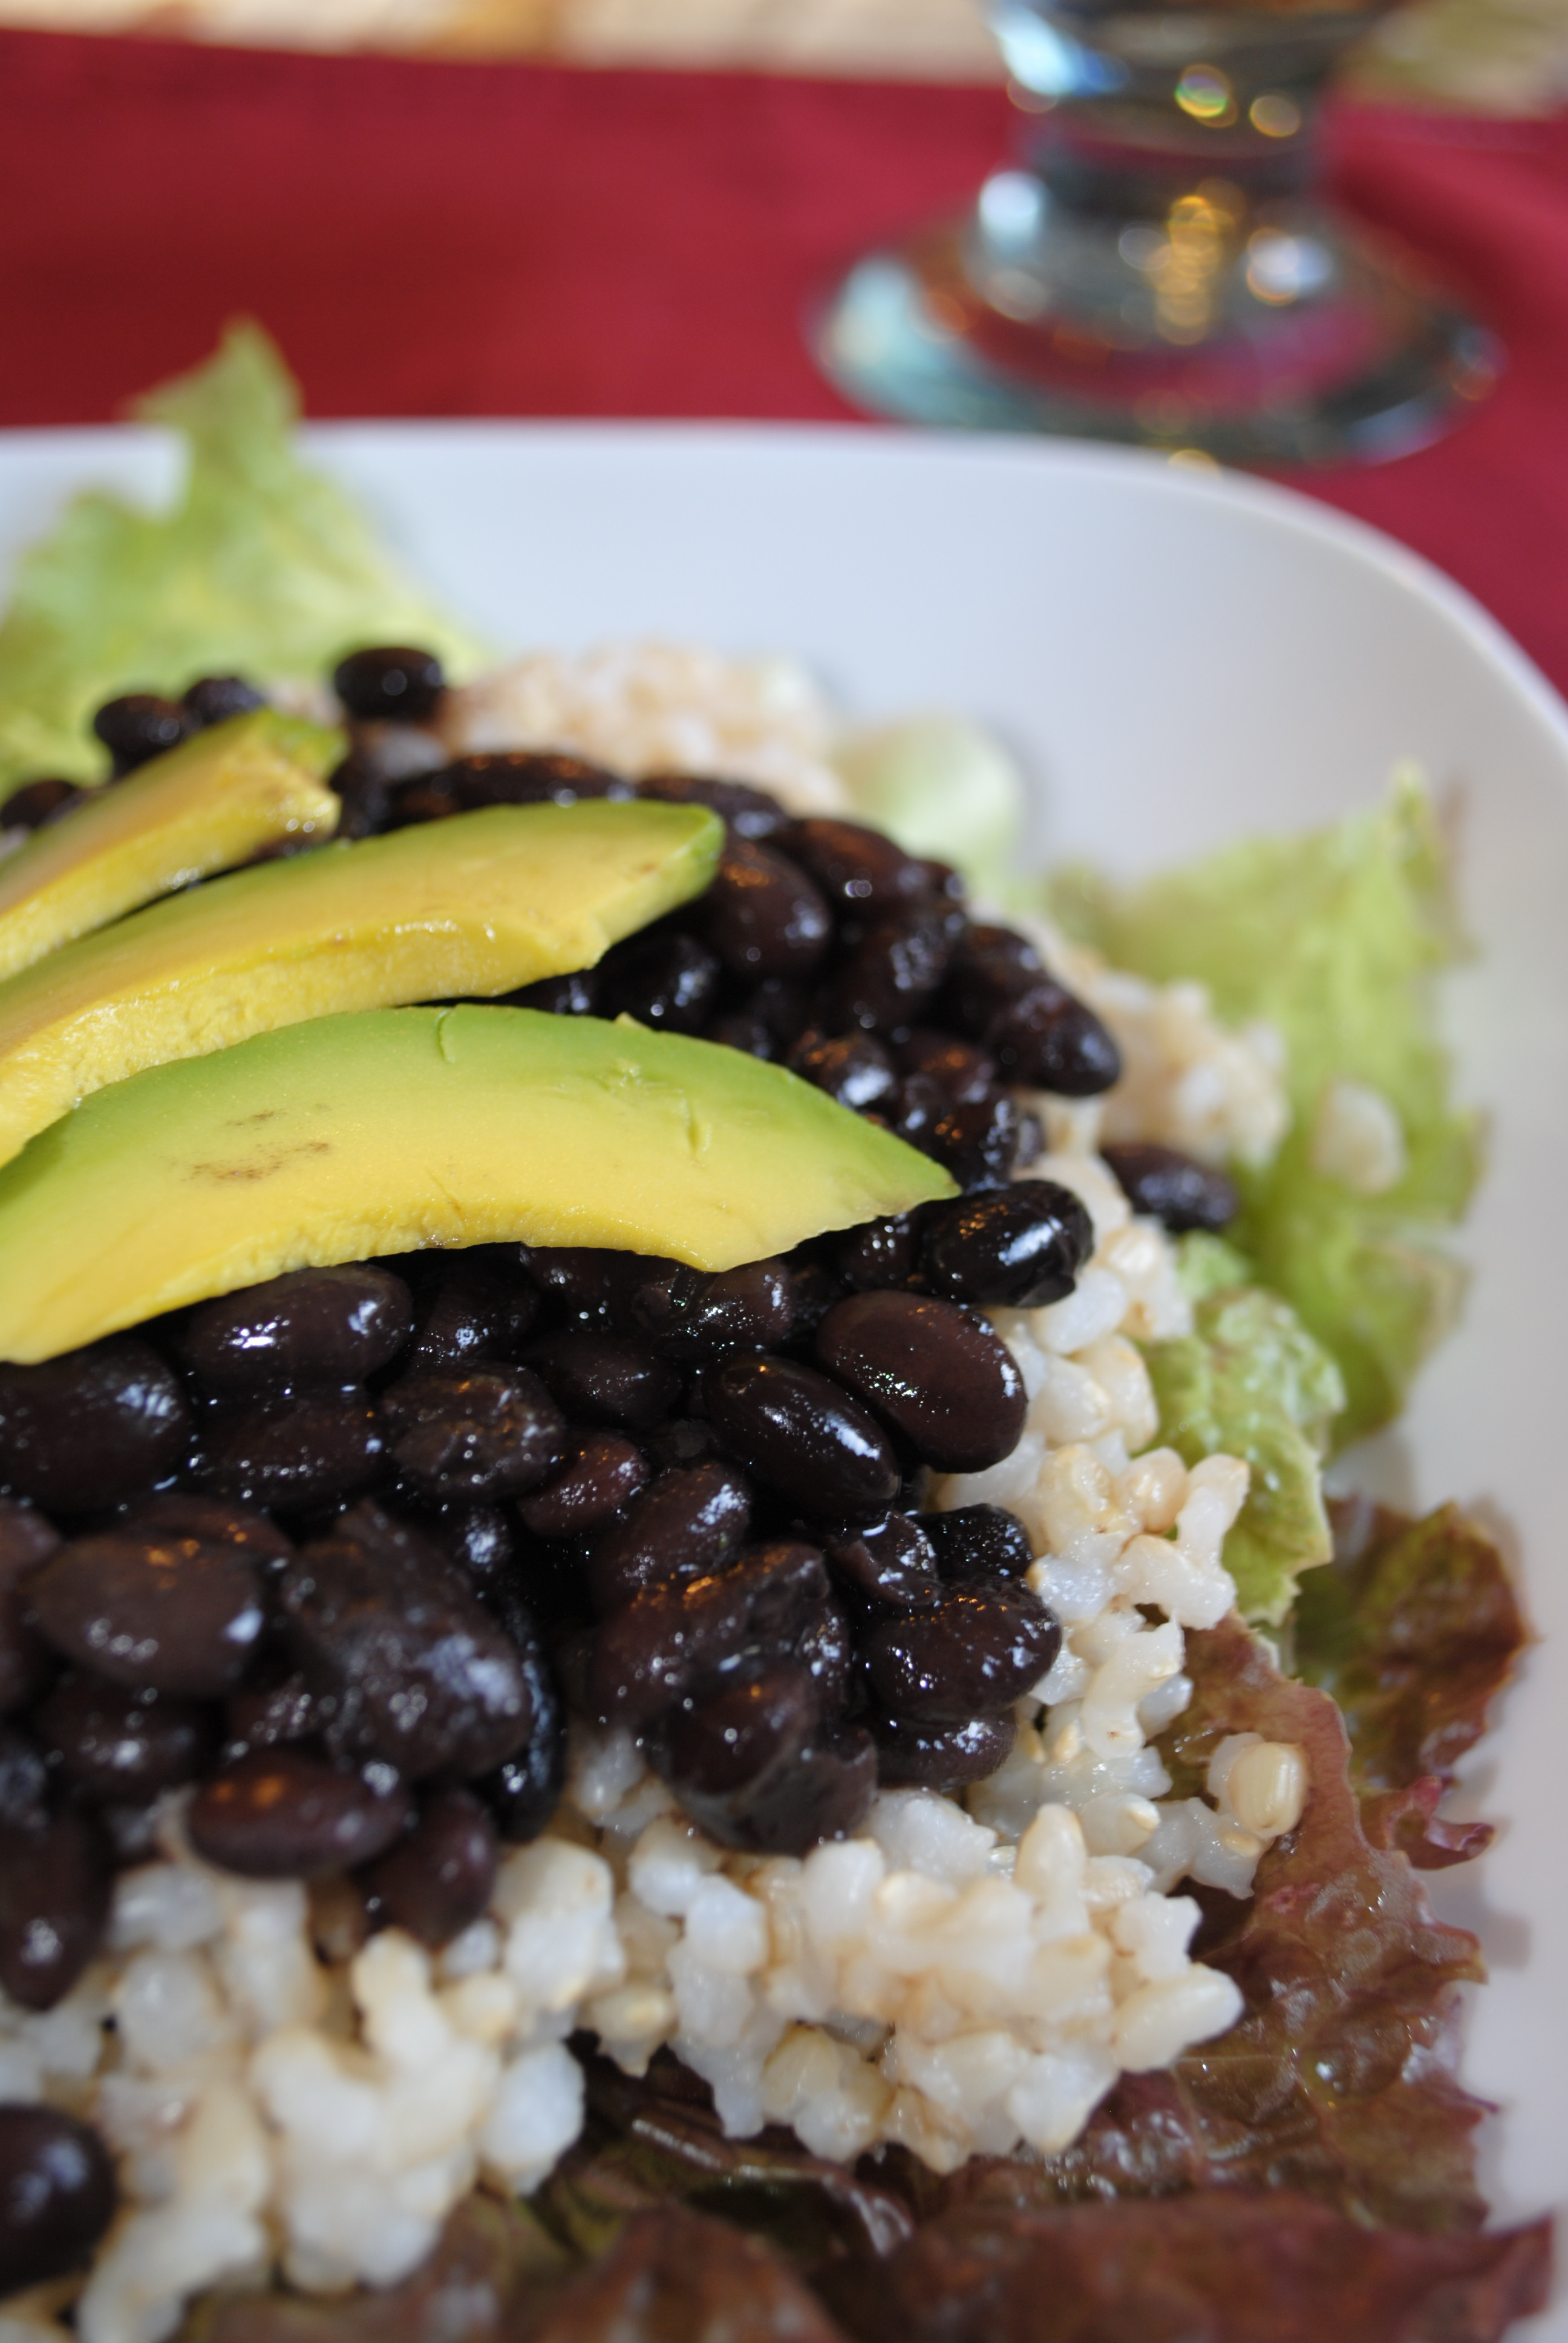 Black Beans And Brown Rice Healthy  Black Beans And Brown Rice Healthy